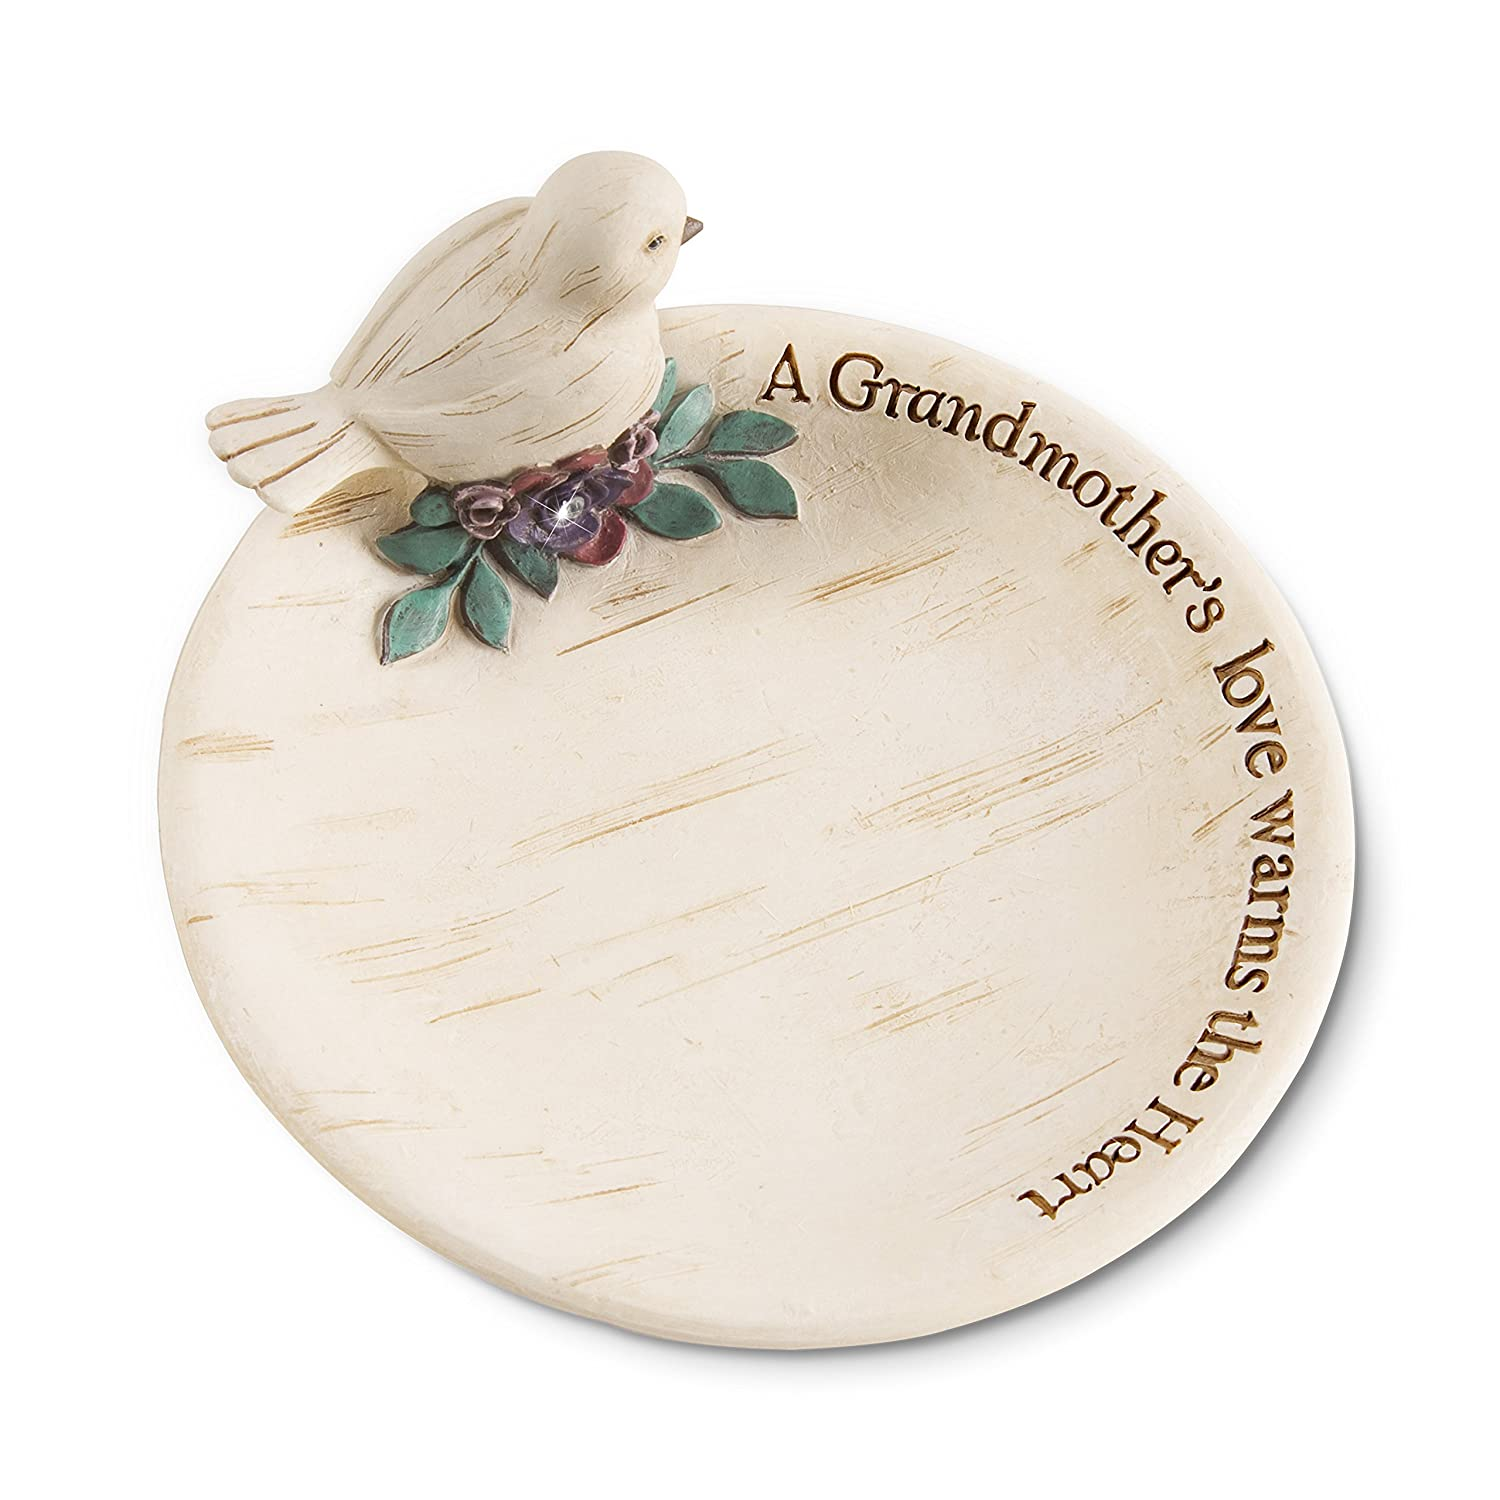 "Pavilion Gift Company 41082 Grandmother Keepsake Dish, 4"" 4"""